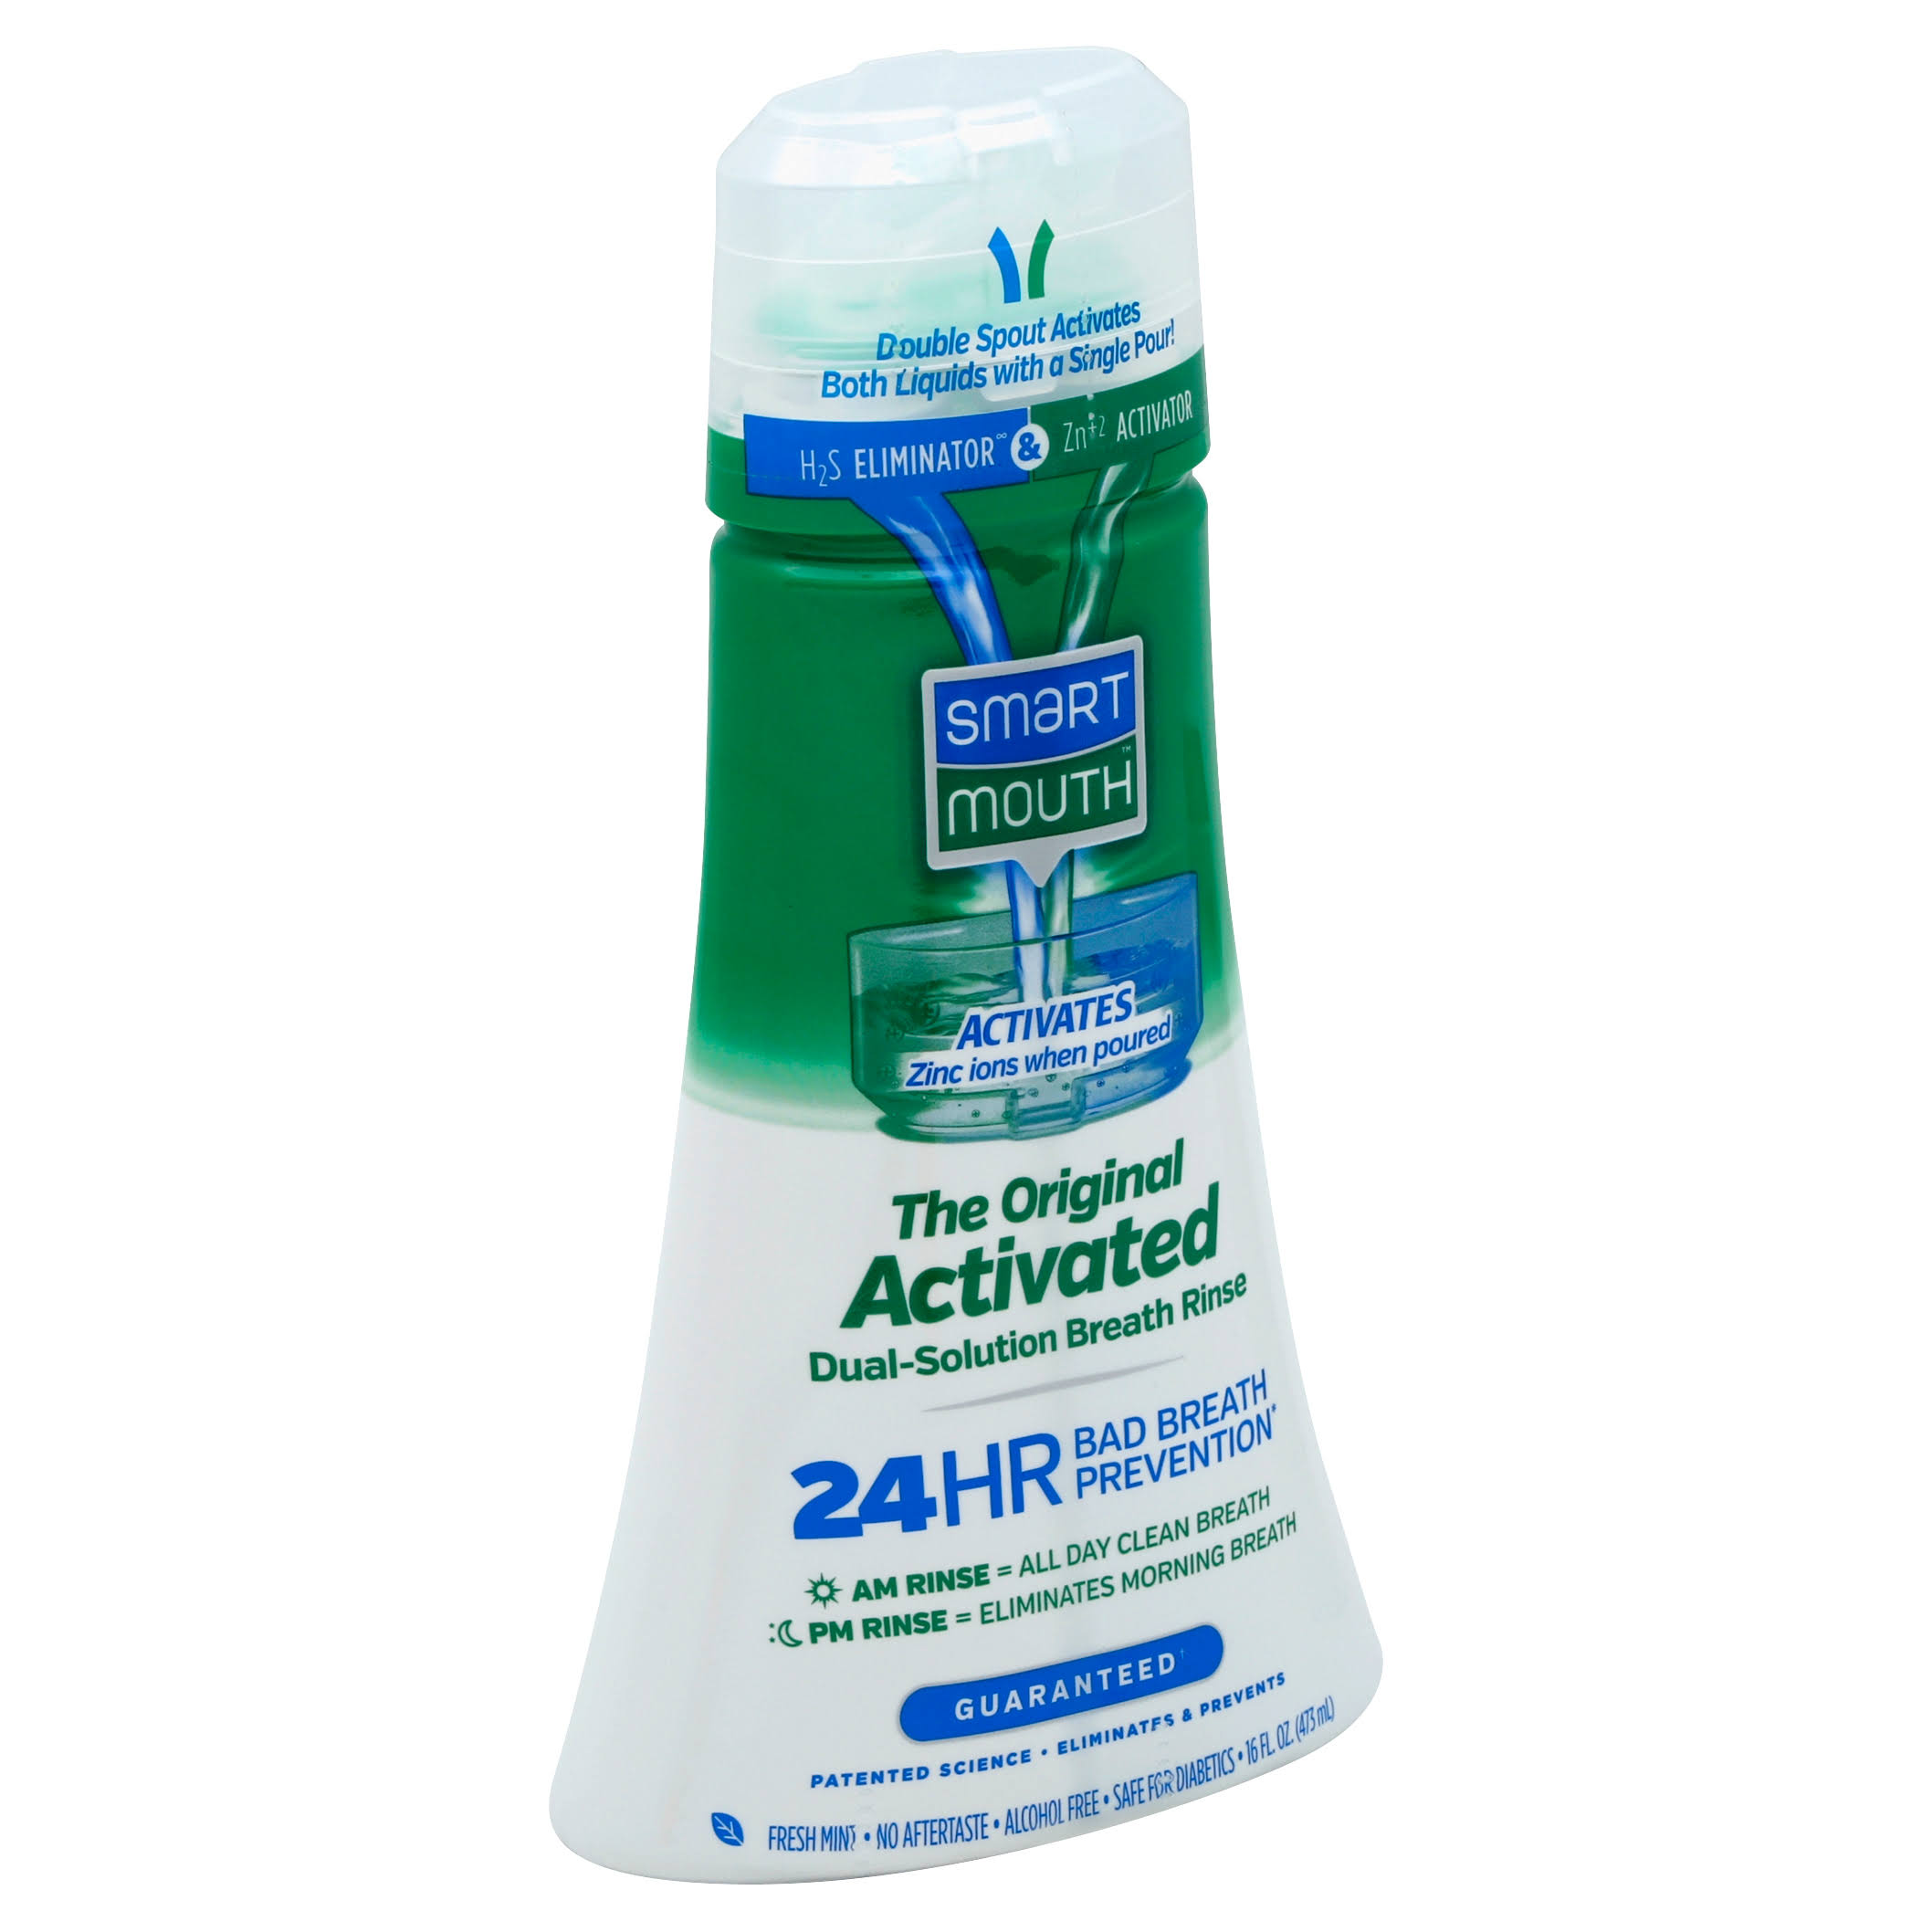 SmartMouth Original Activated Mouthwash - 470ml